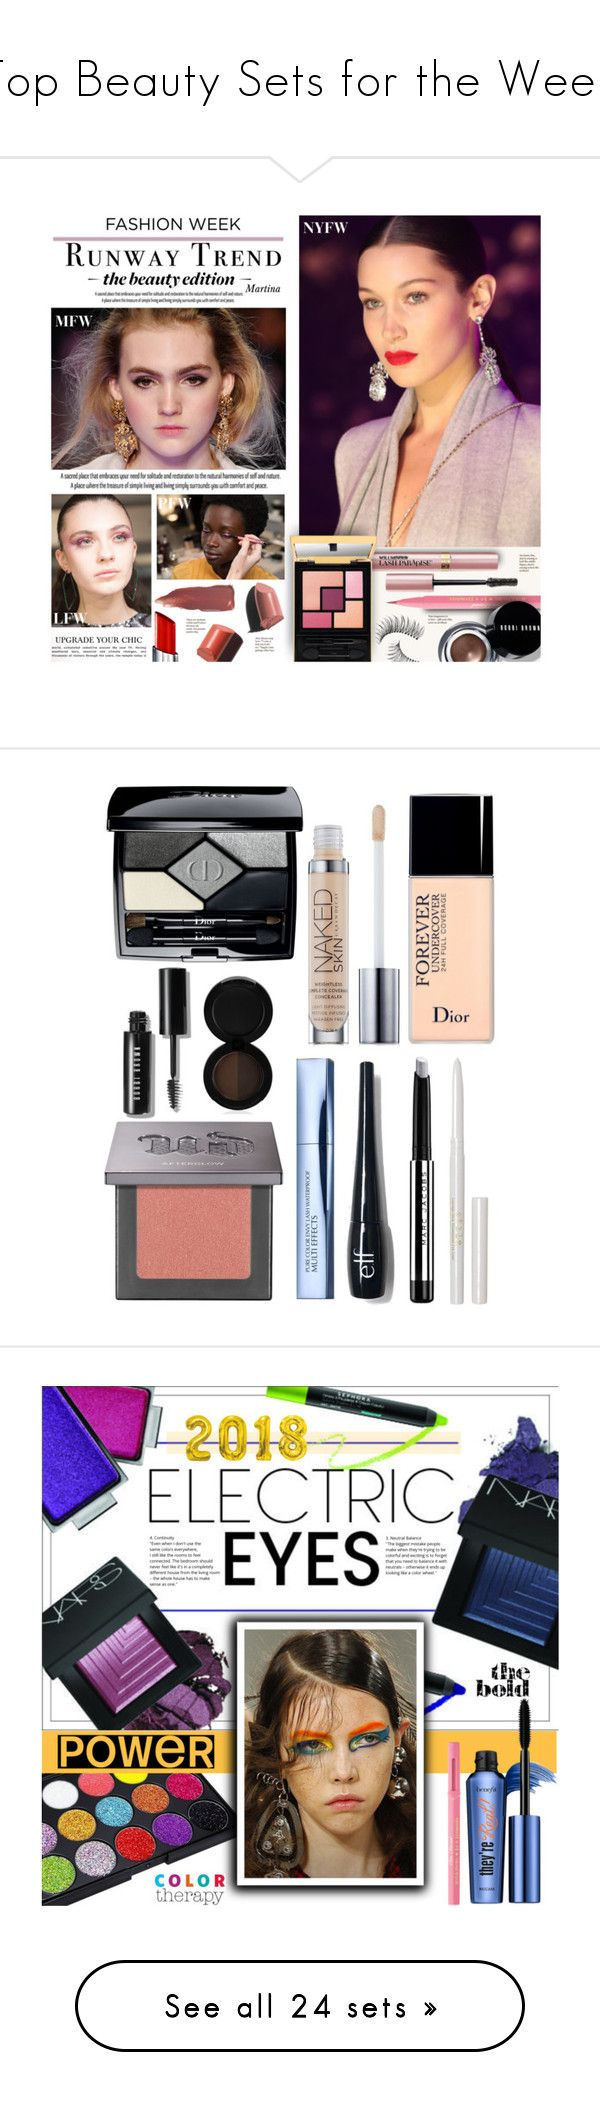 """""""Top Beauty Sets for the Week"""" by polyvore ❤ liked on Polyvore featuring beauty, Too Faced Cosmetics, Trish McEvoy, L'Oréal Paris, Bobbi Brown Cosmetics, By Terry, Yves Saint Laurent, BeautyTrend, fashionWeek and Christian Dior"""